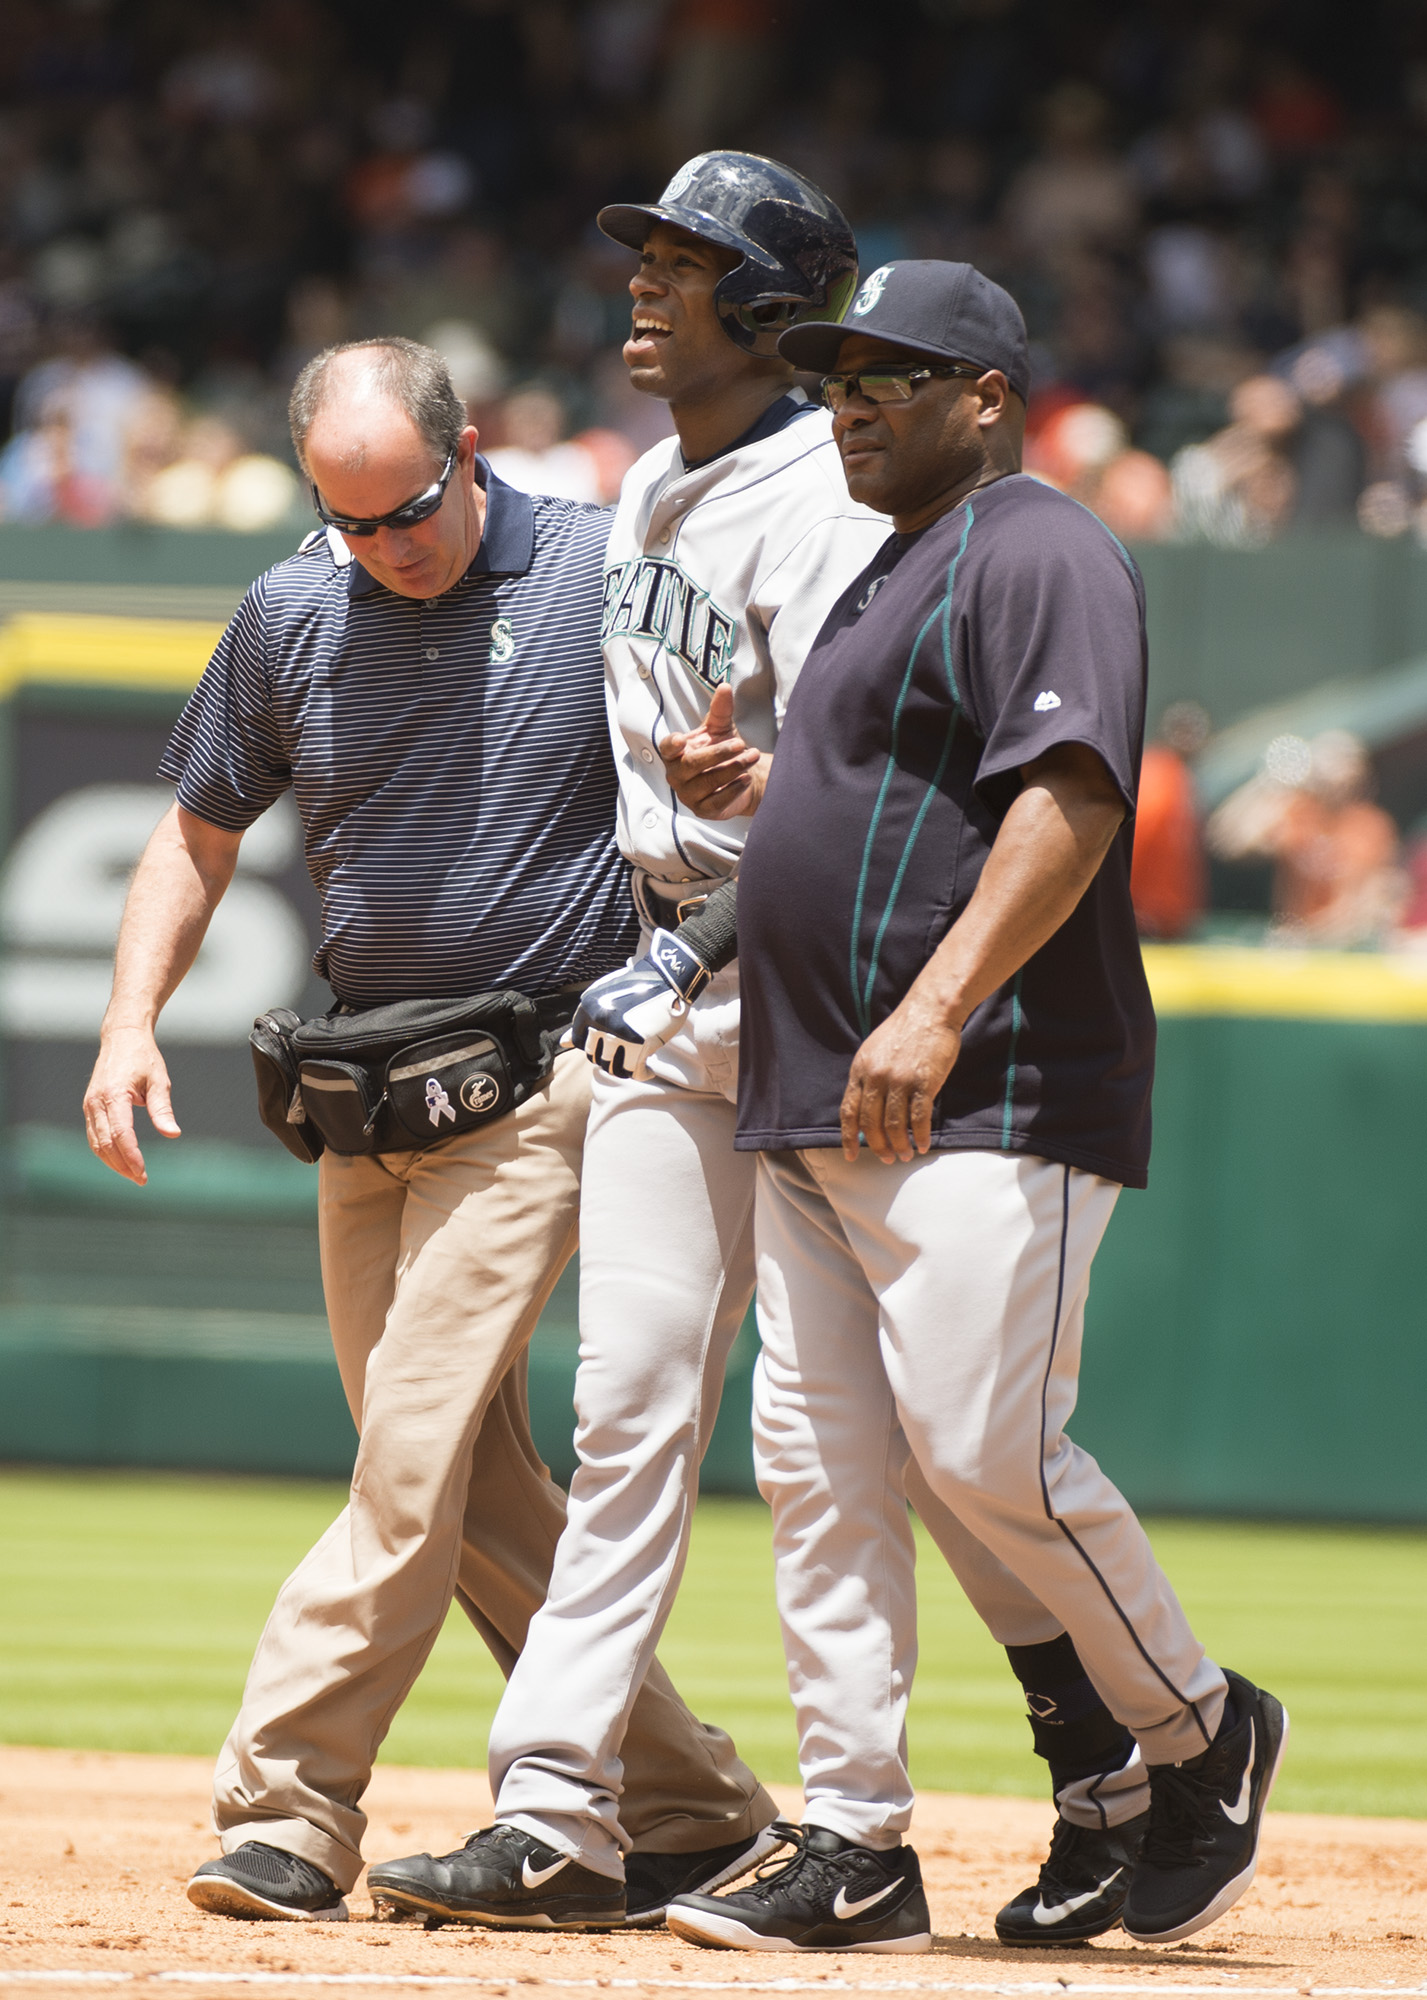 Seattle Mariners' Austin Jackson, center, is helped off the field by a trainer and first base coach Chris Woodward after a close play at first base against the Houston Astros in the third inning of a baseball game on Sunday, May 3, 2015, in Houston, Texas